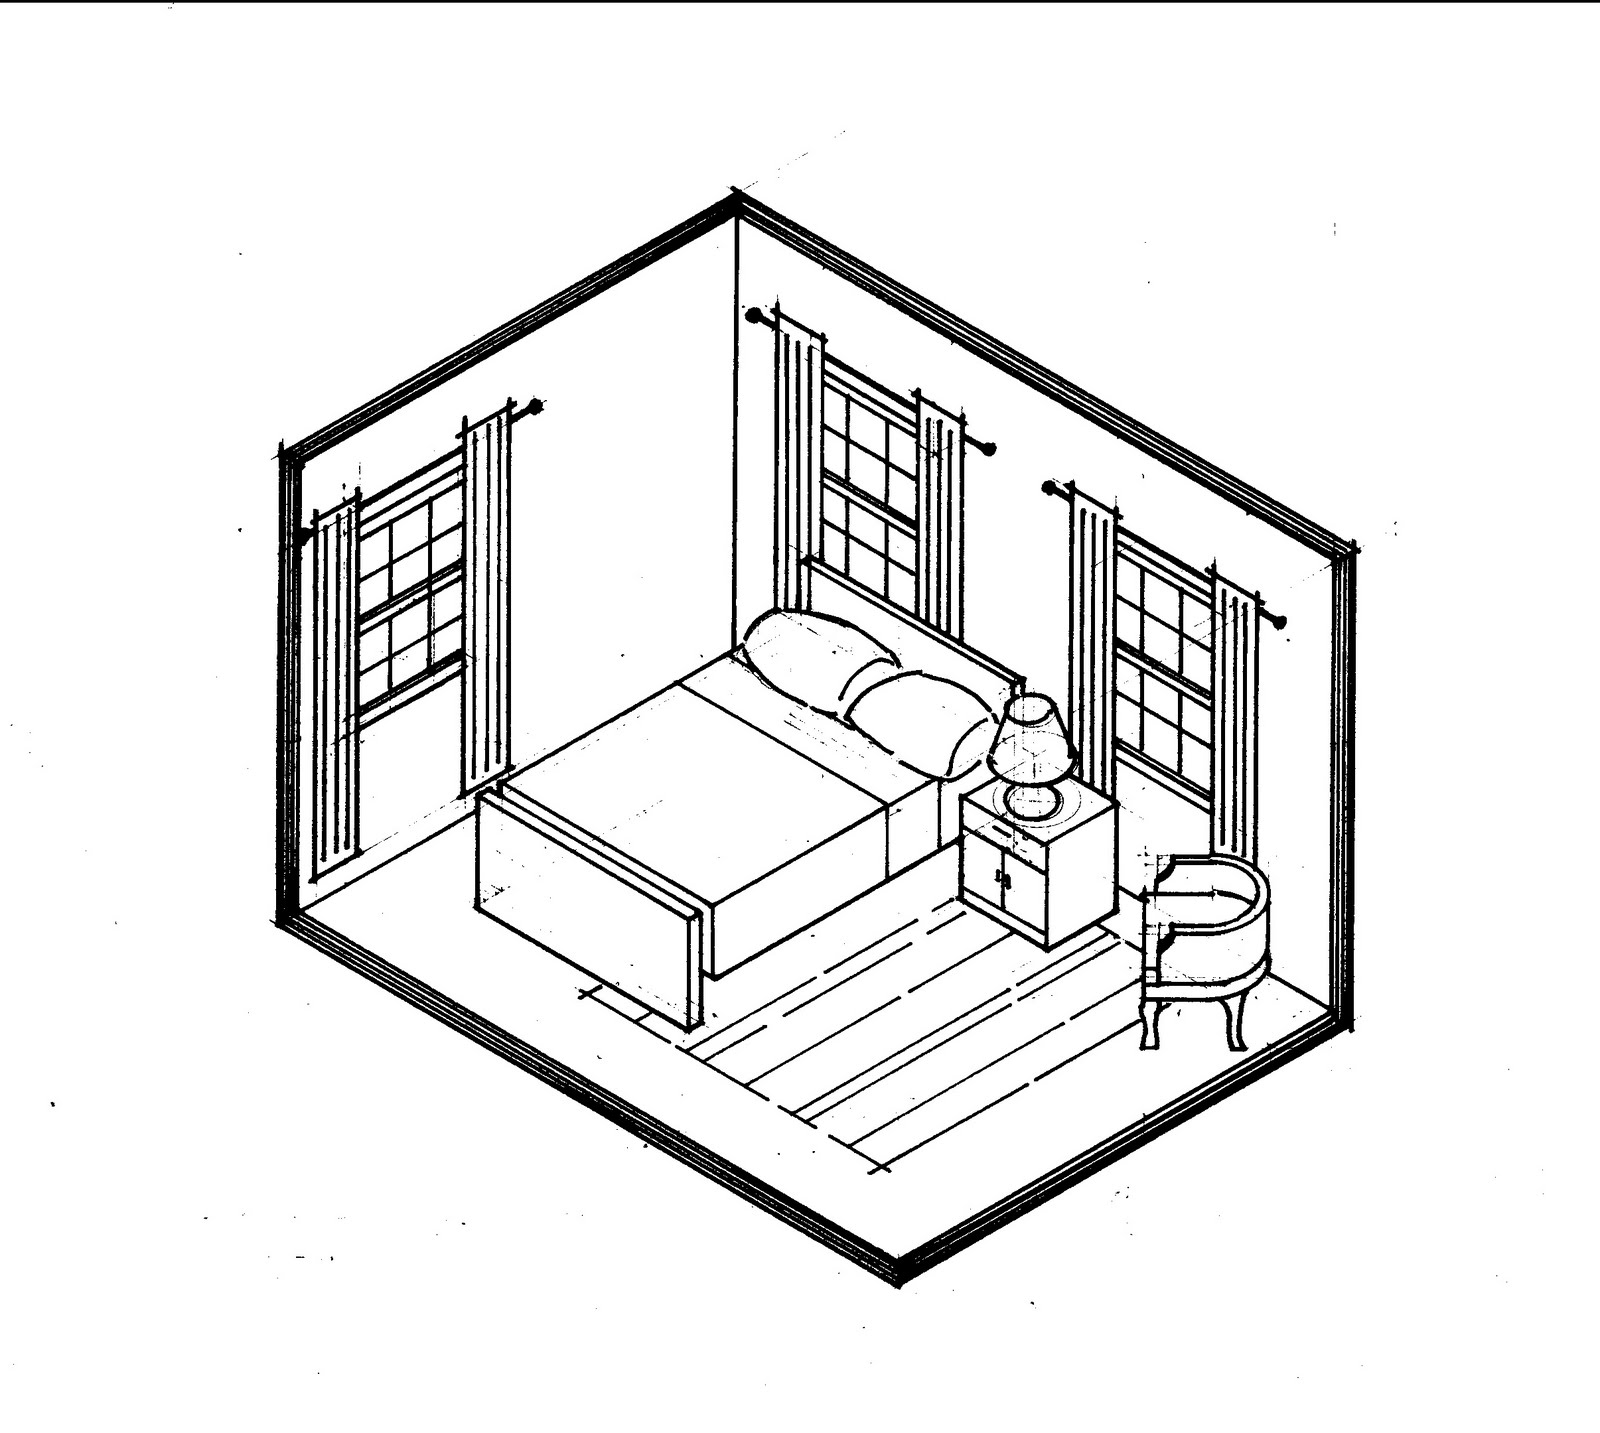 Room Perspective Drawing At GetDrawings.com